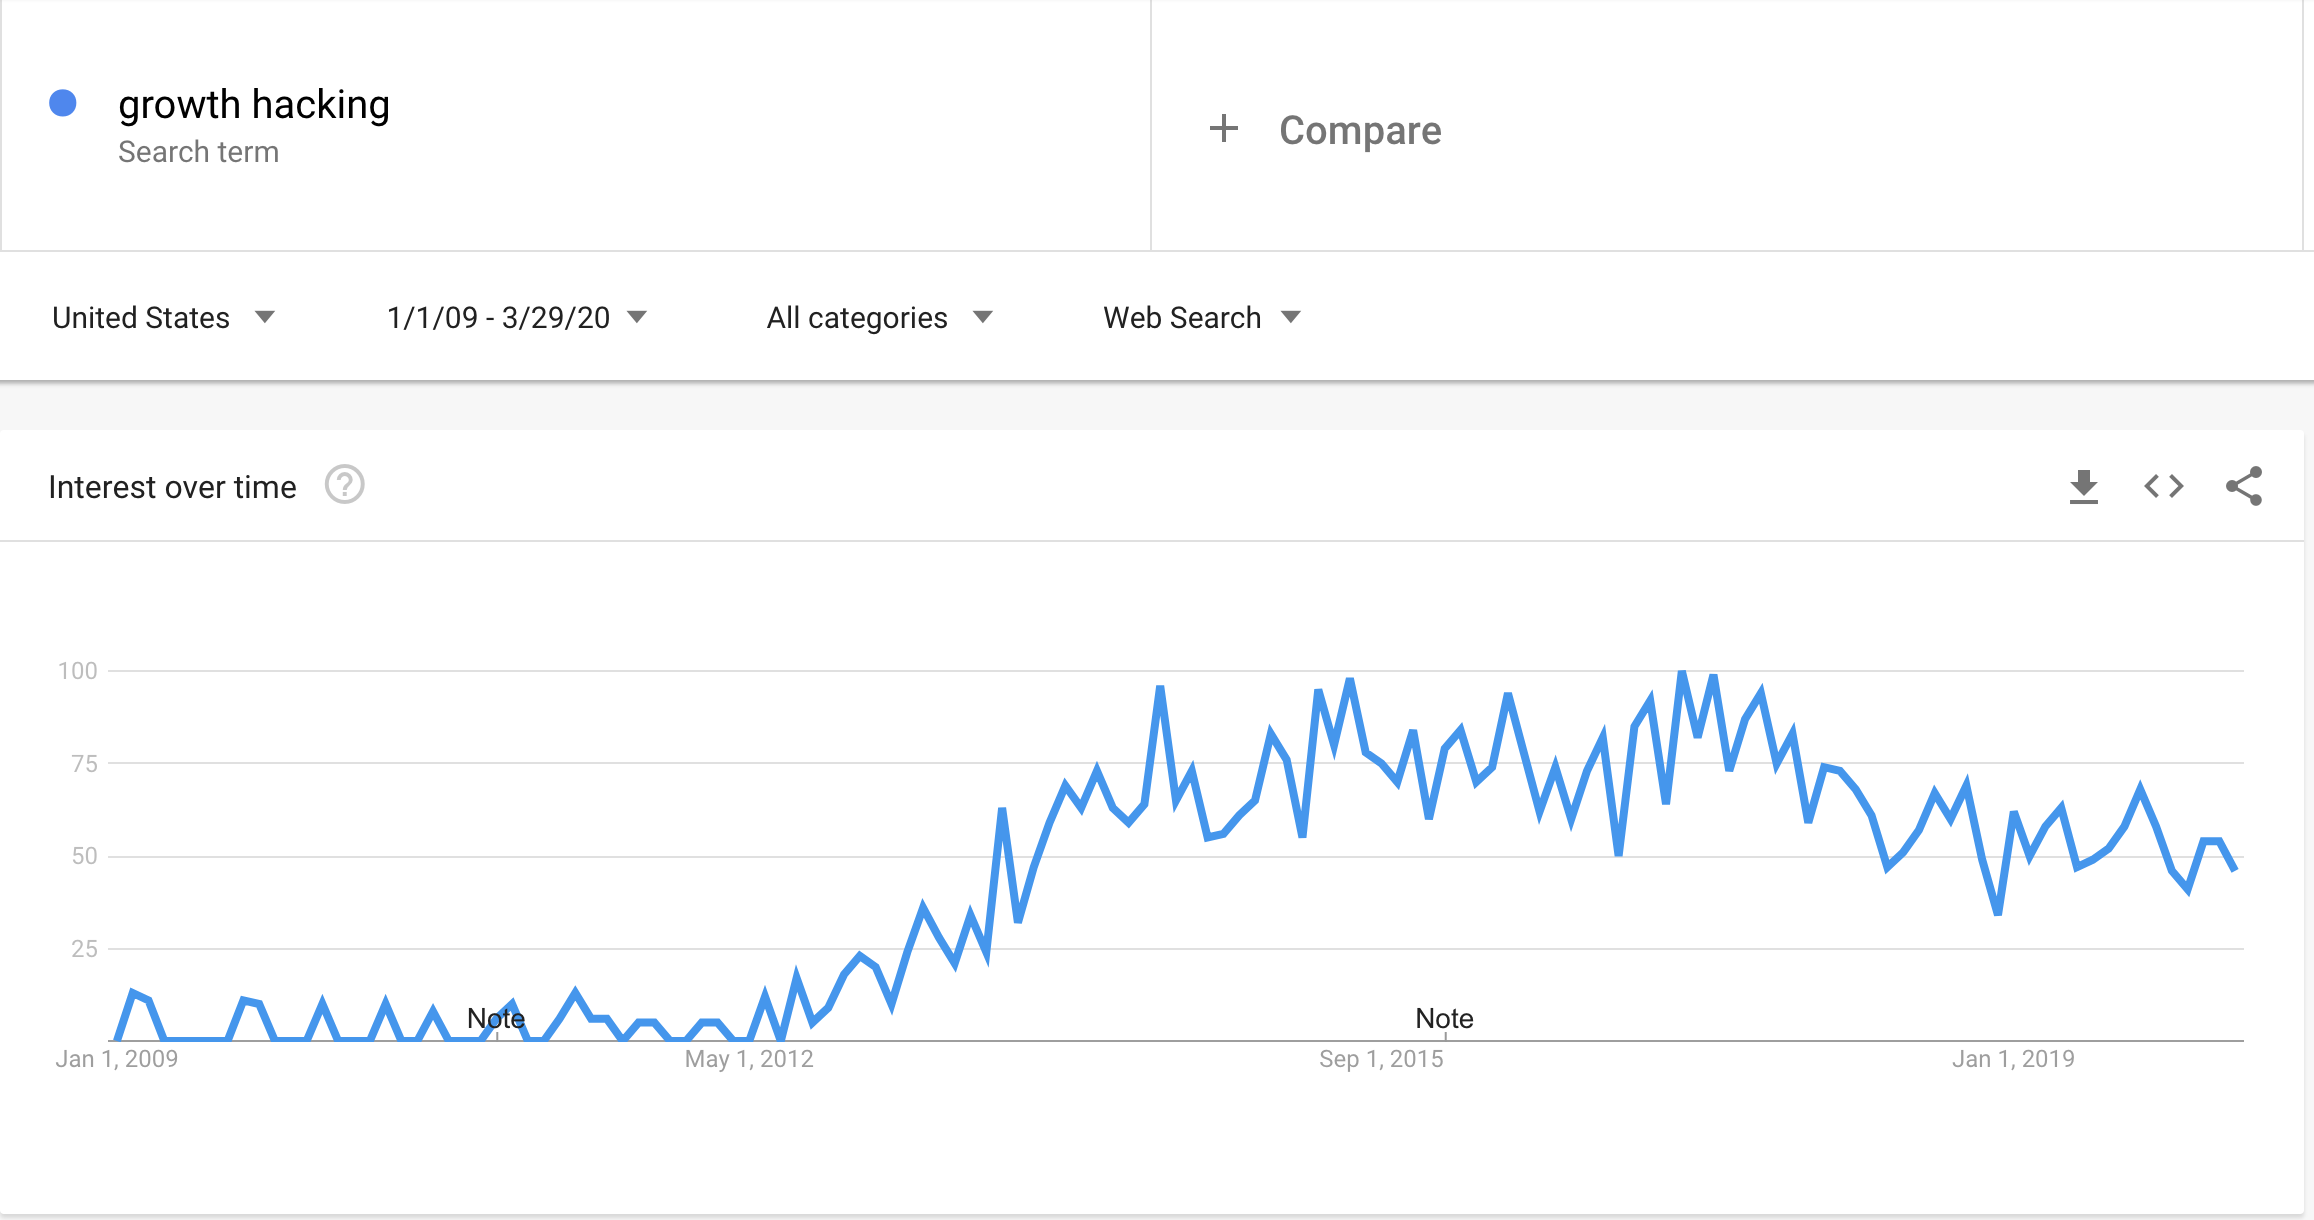 Google Trends Growth Hacking